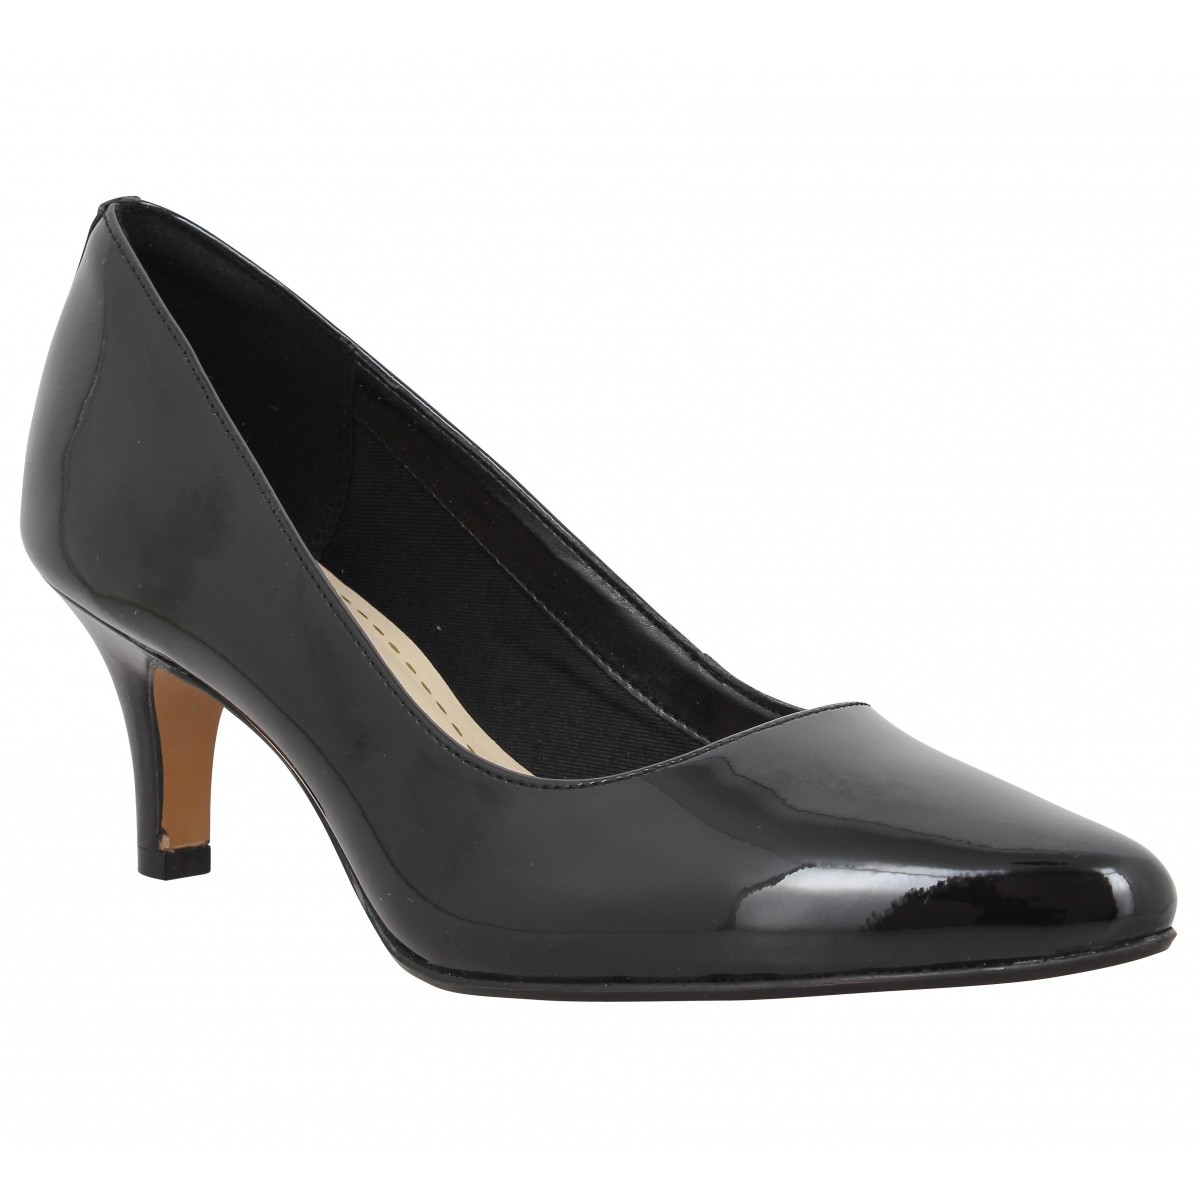 Isidora Vernis Chaussures Faye Clarks Fanny Noir Femme 5fPwwq